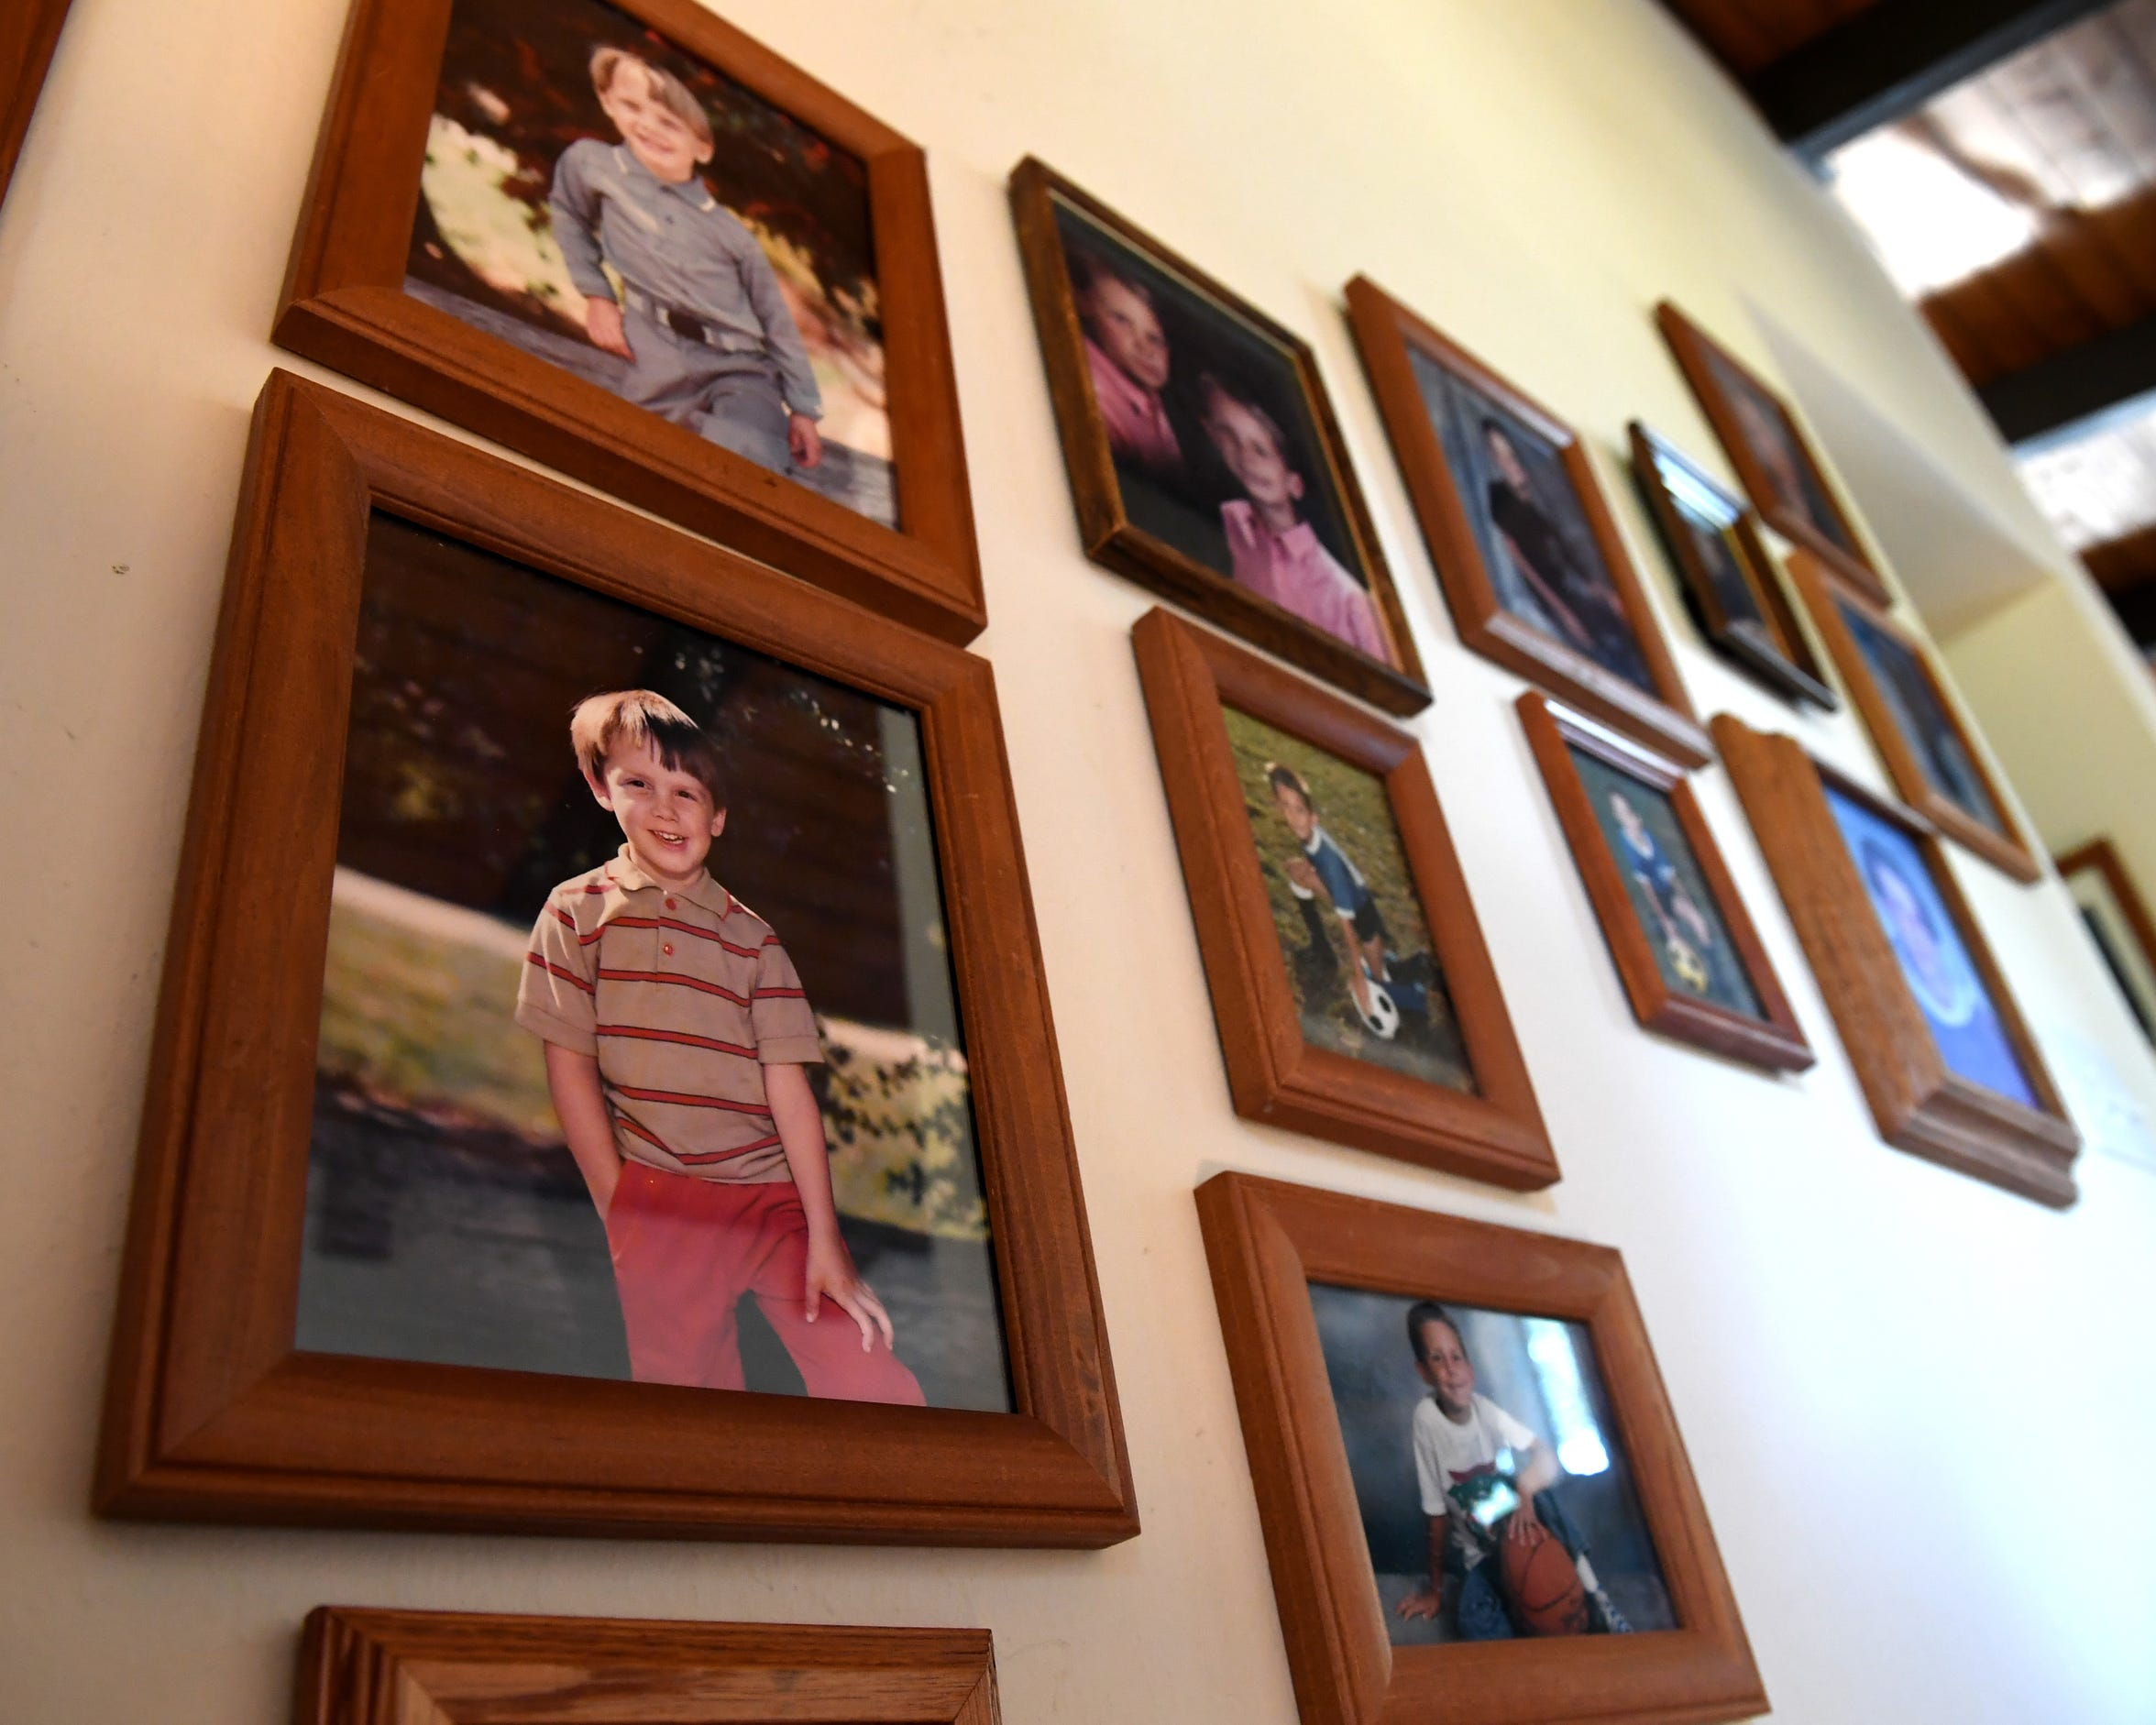 Teresa Pasquini has spent years advocating for the severely mentally ill in Contra Costa County following her own experience with her son Dan. Photos in her home's hallway recall happier times. Three years ago, the county's Board of Supervisors approved the use of Laura's Laws, giving Pasquini and other families another option.